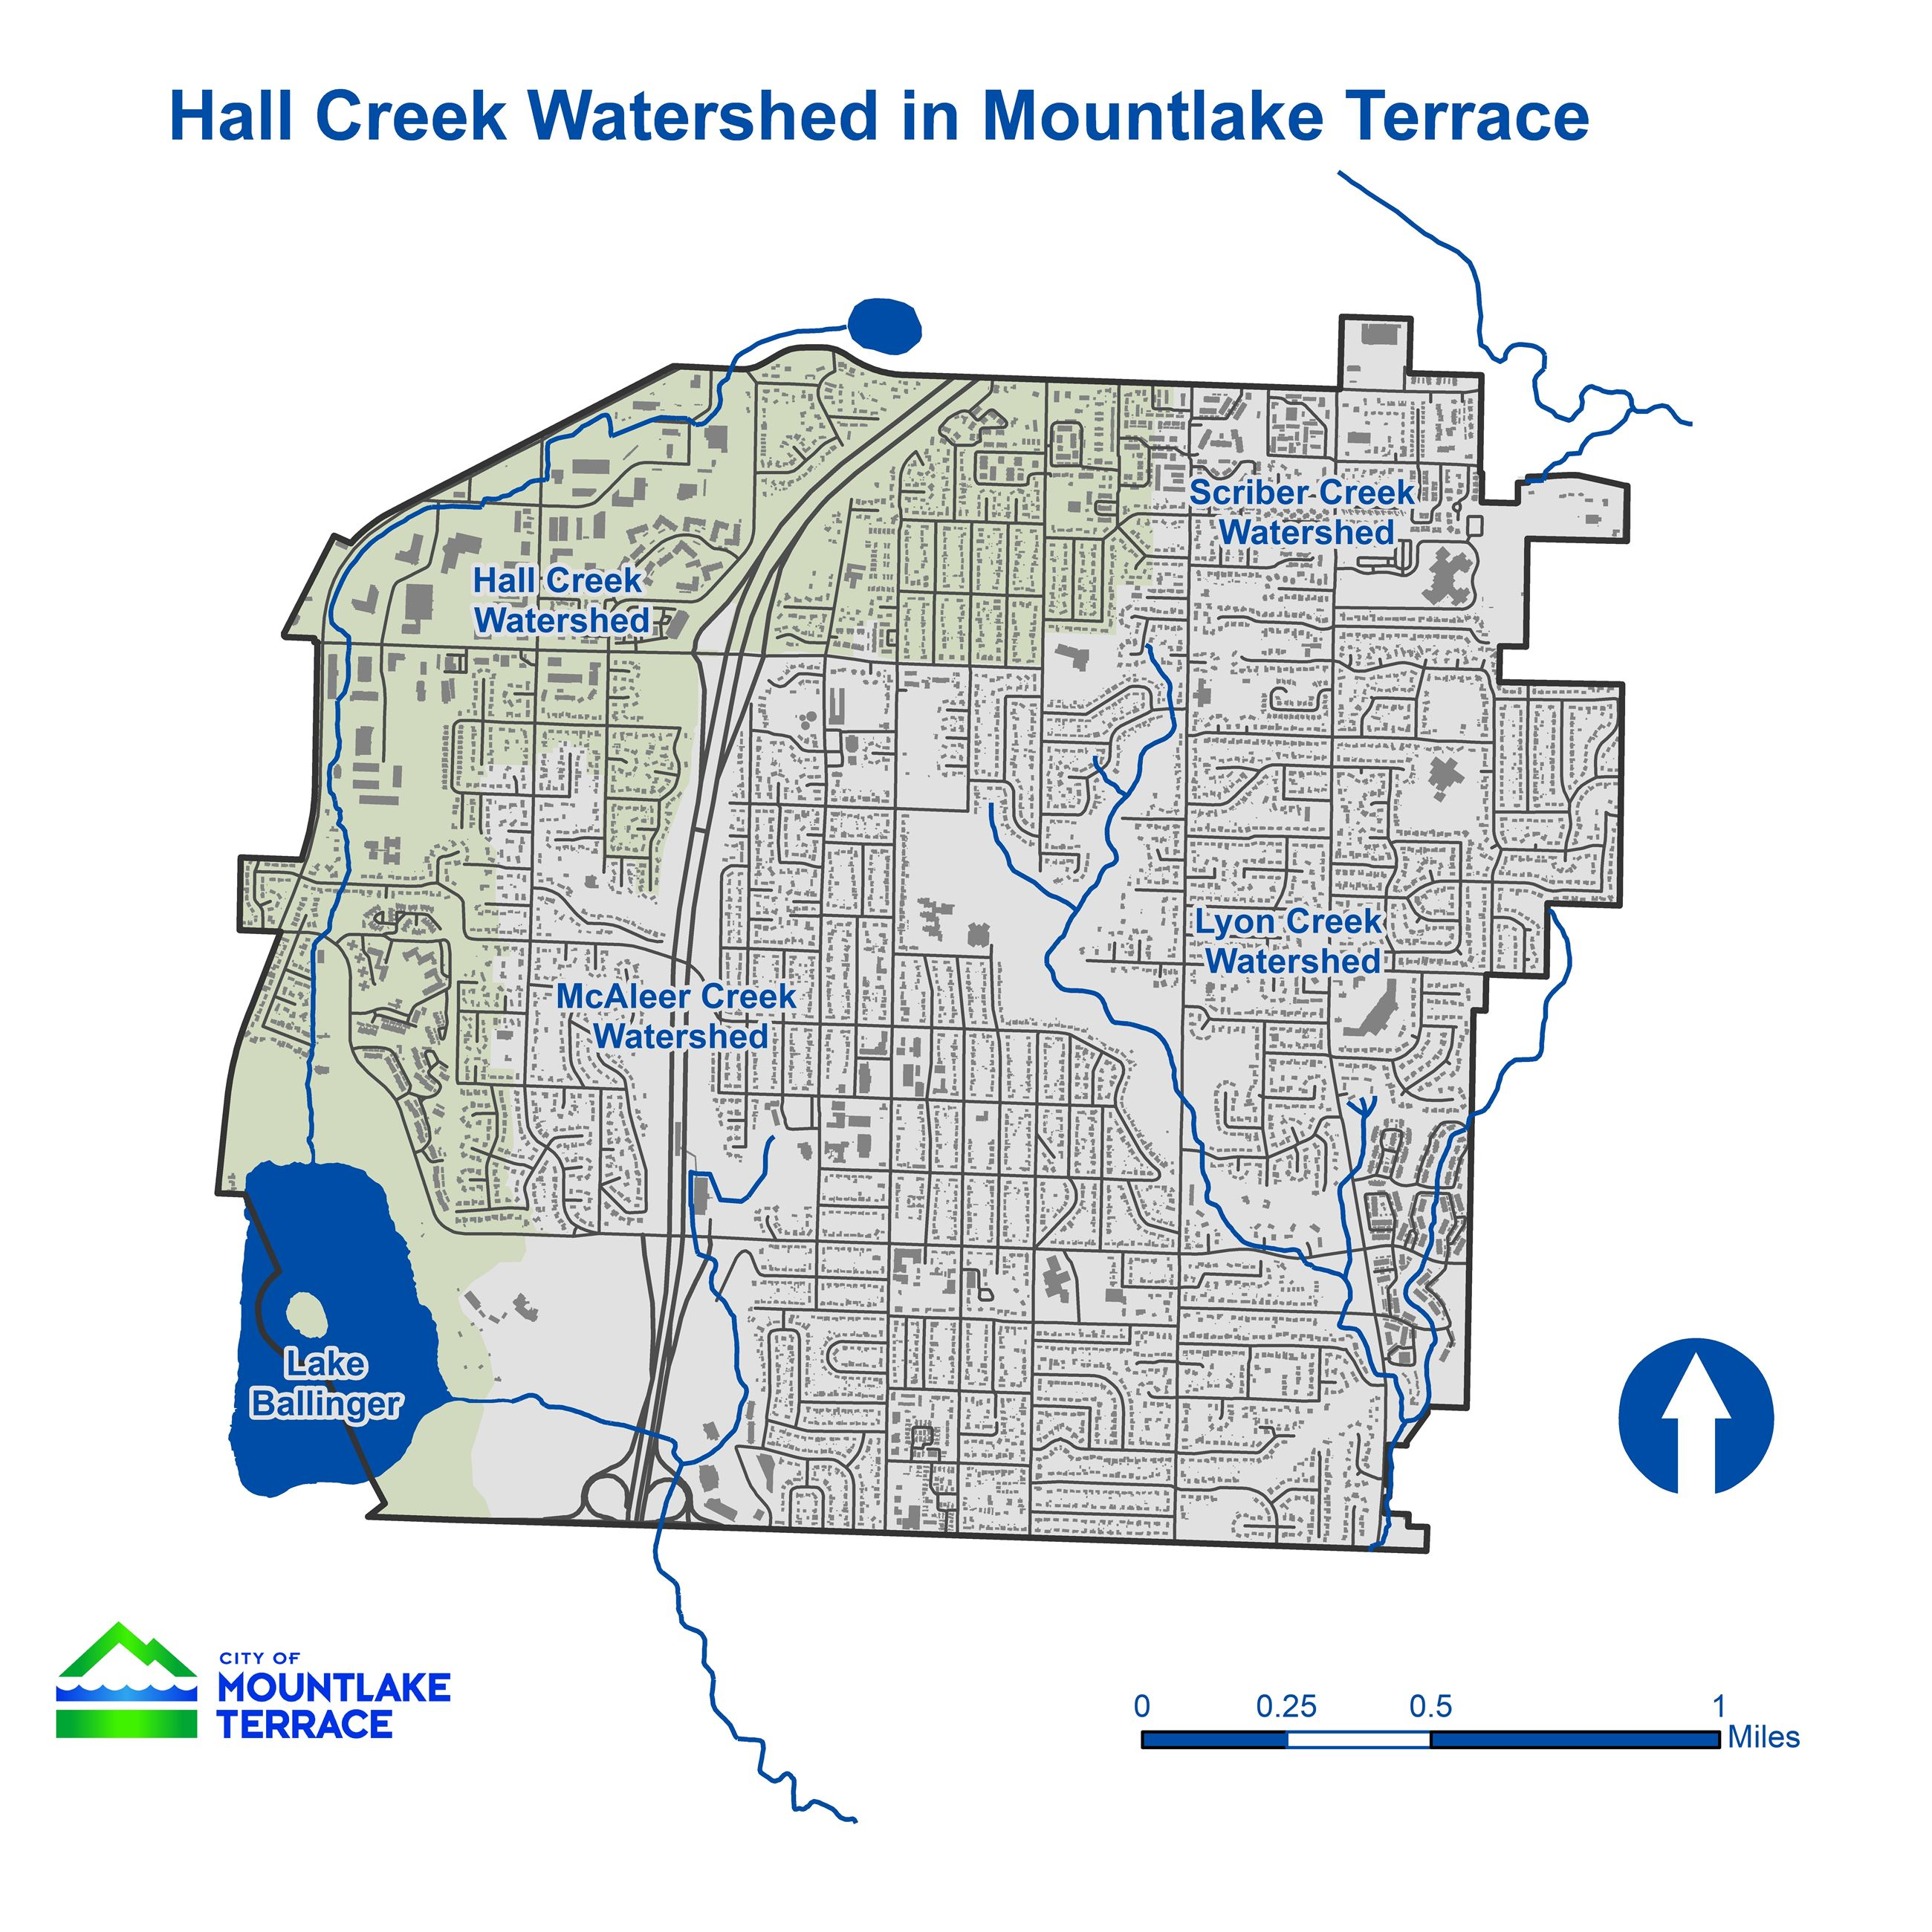 Hall Creek Watershed